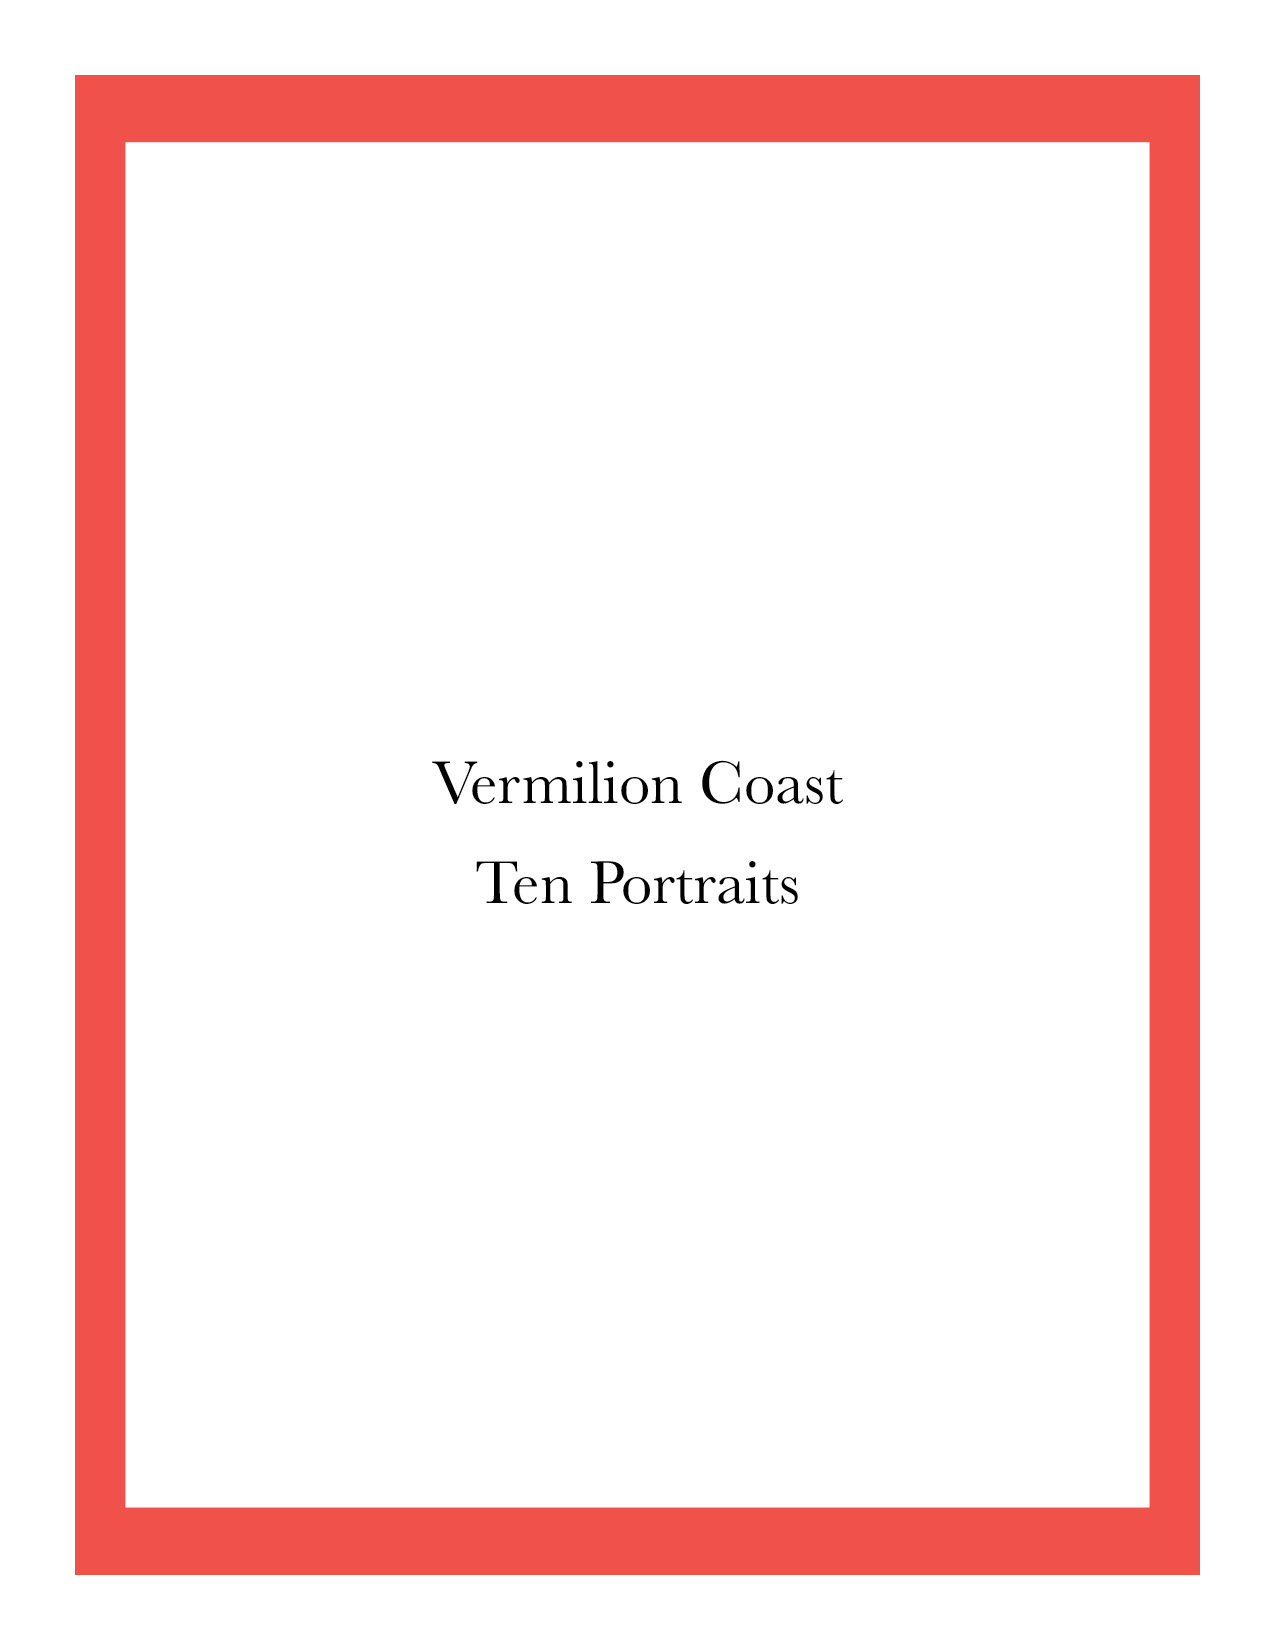 Vermilion_Coast_Book1.jpg